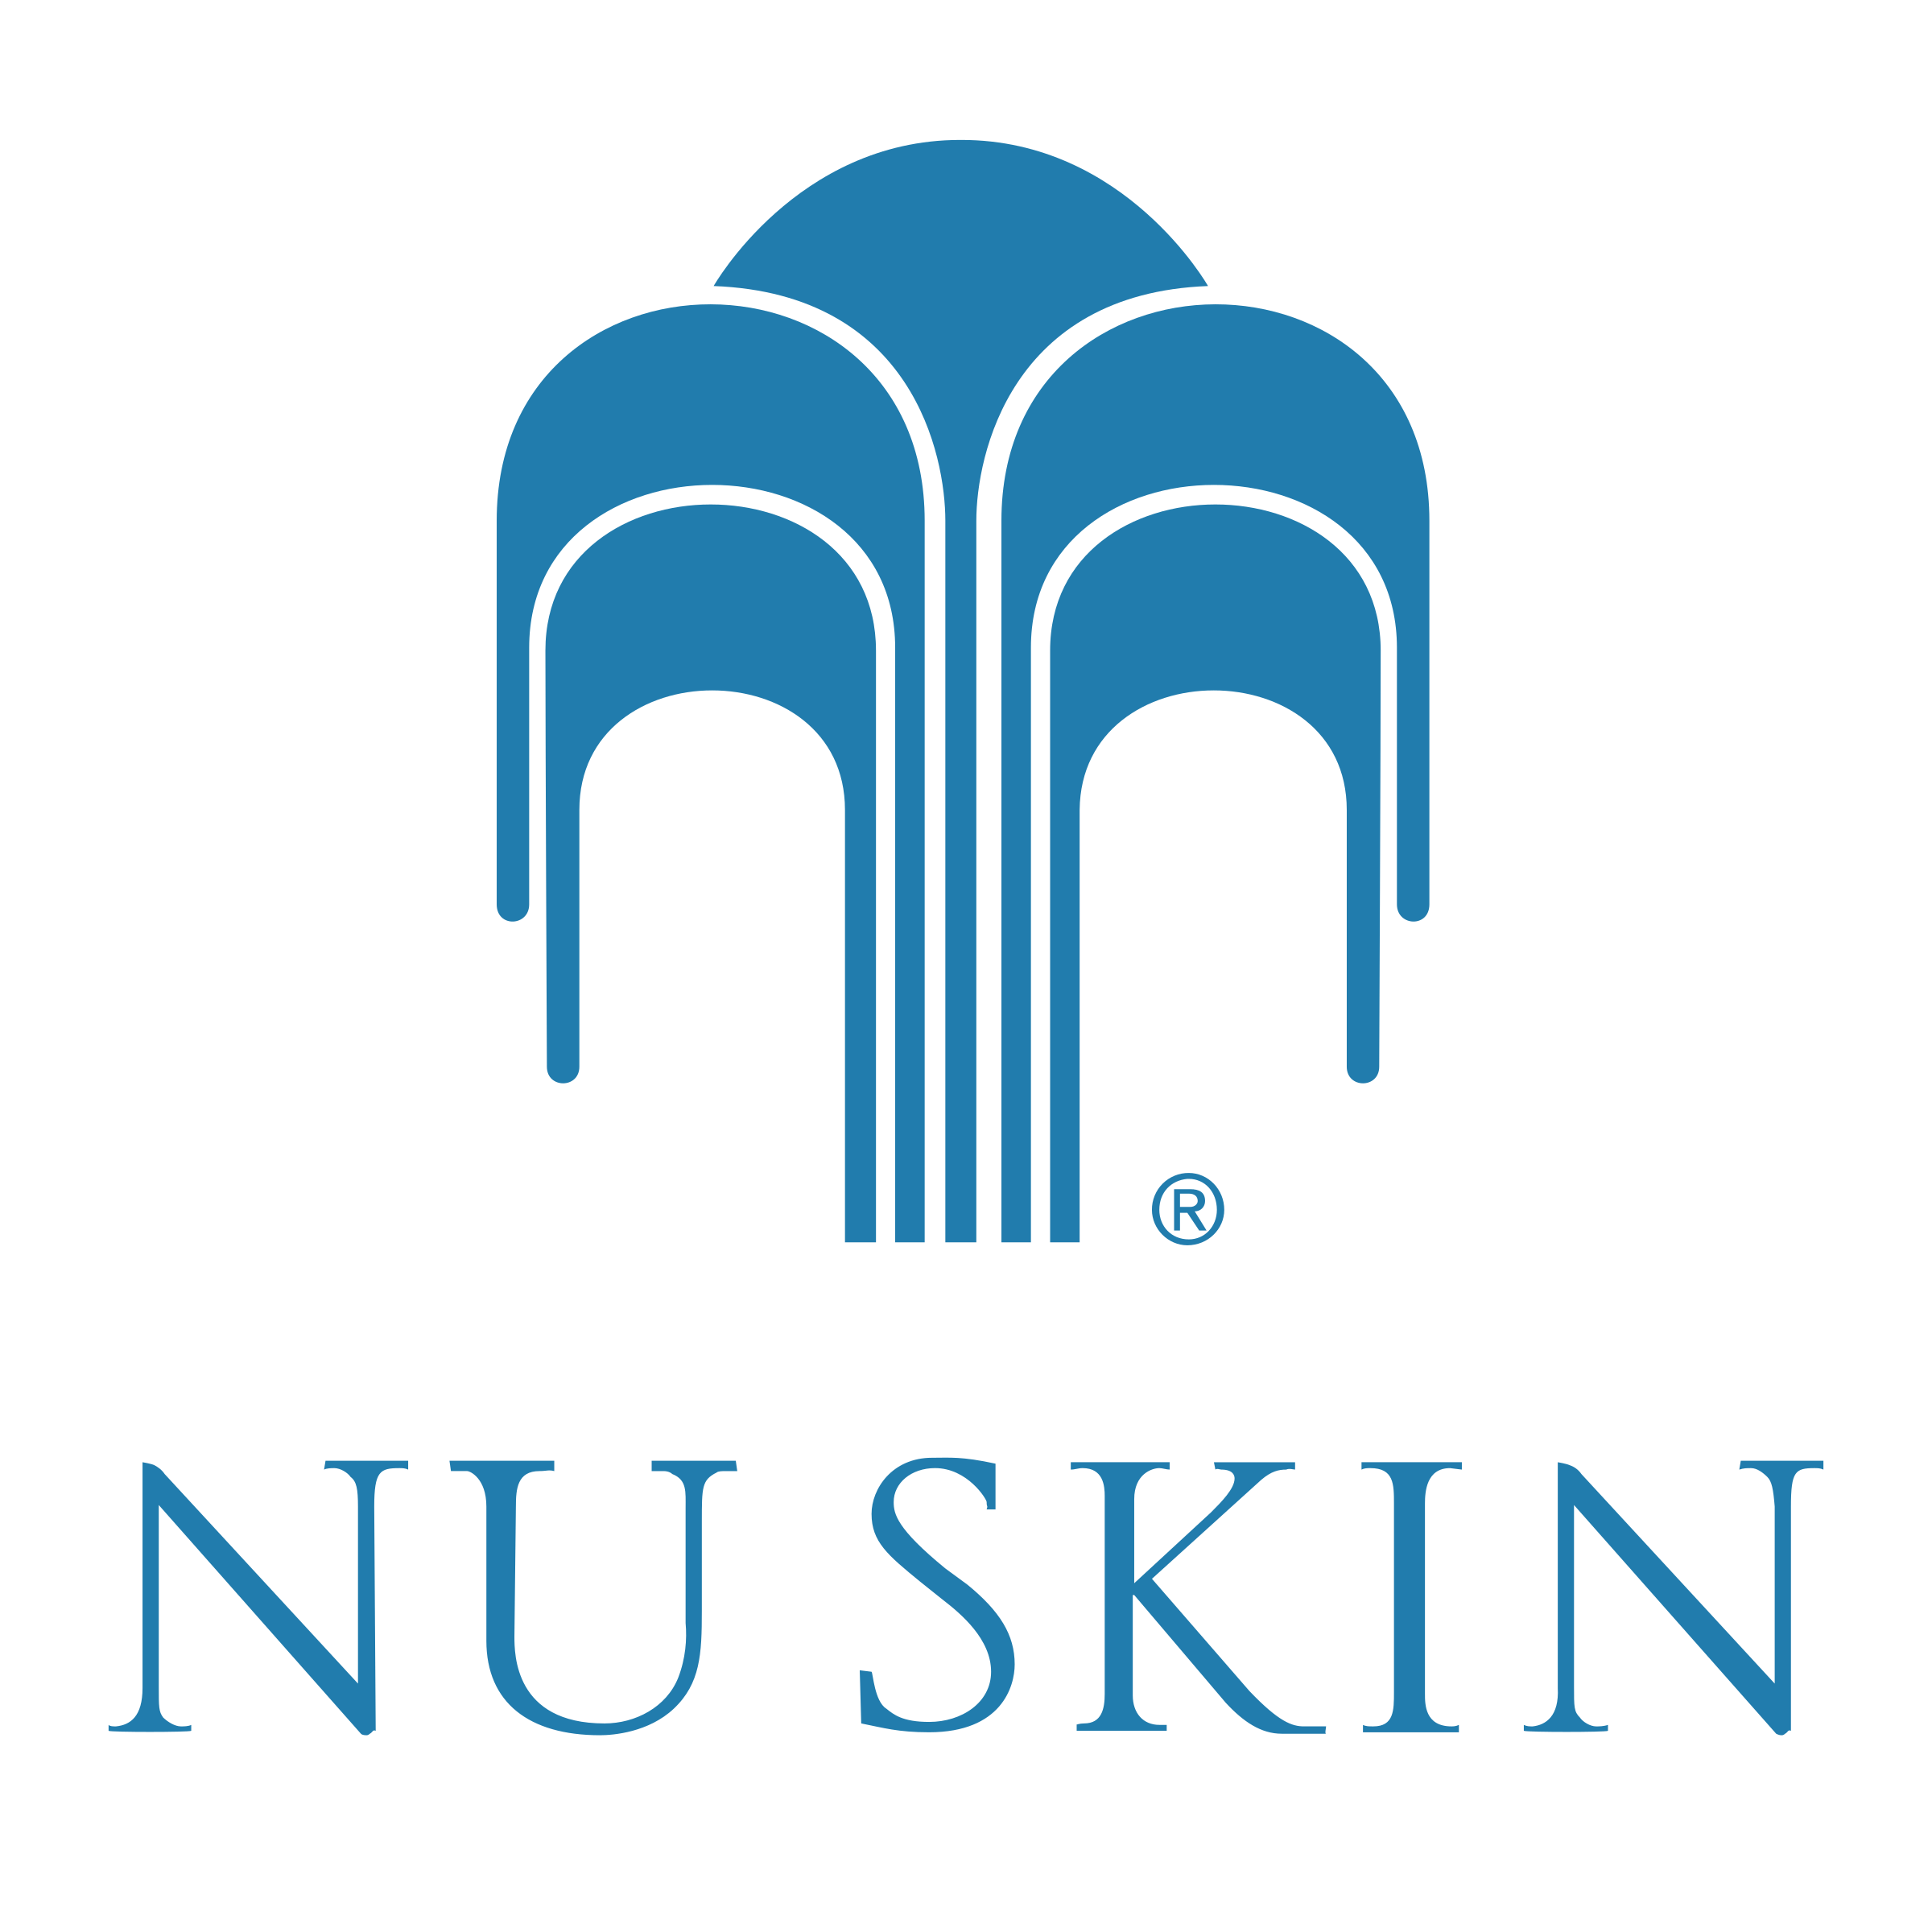 nu skin logo png transparent svg vector freebie supply rh freebiesupply com nu skin logo download nu skin logo svg